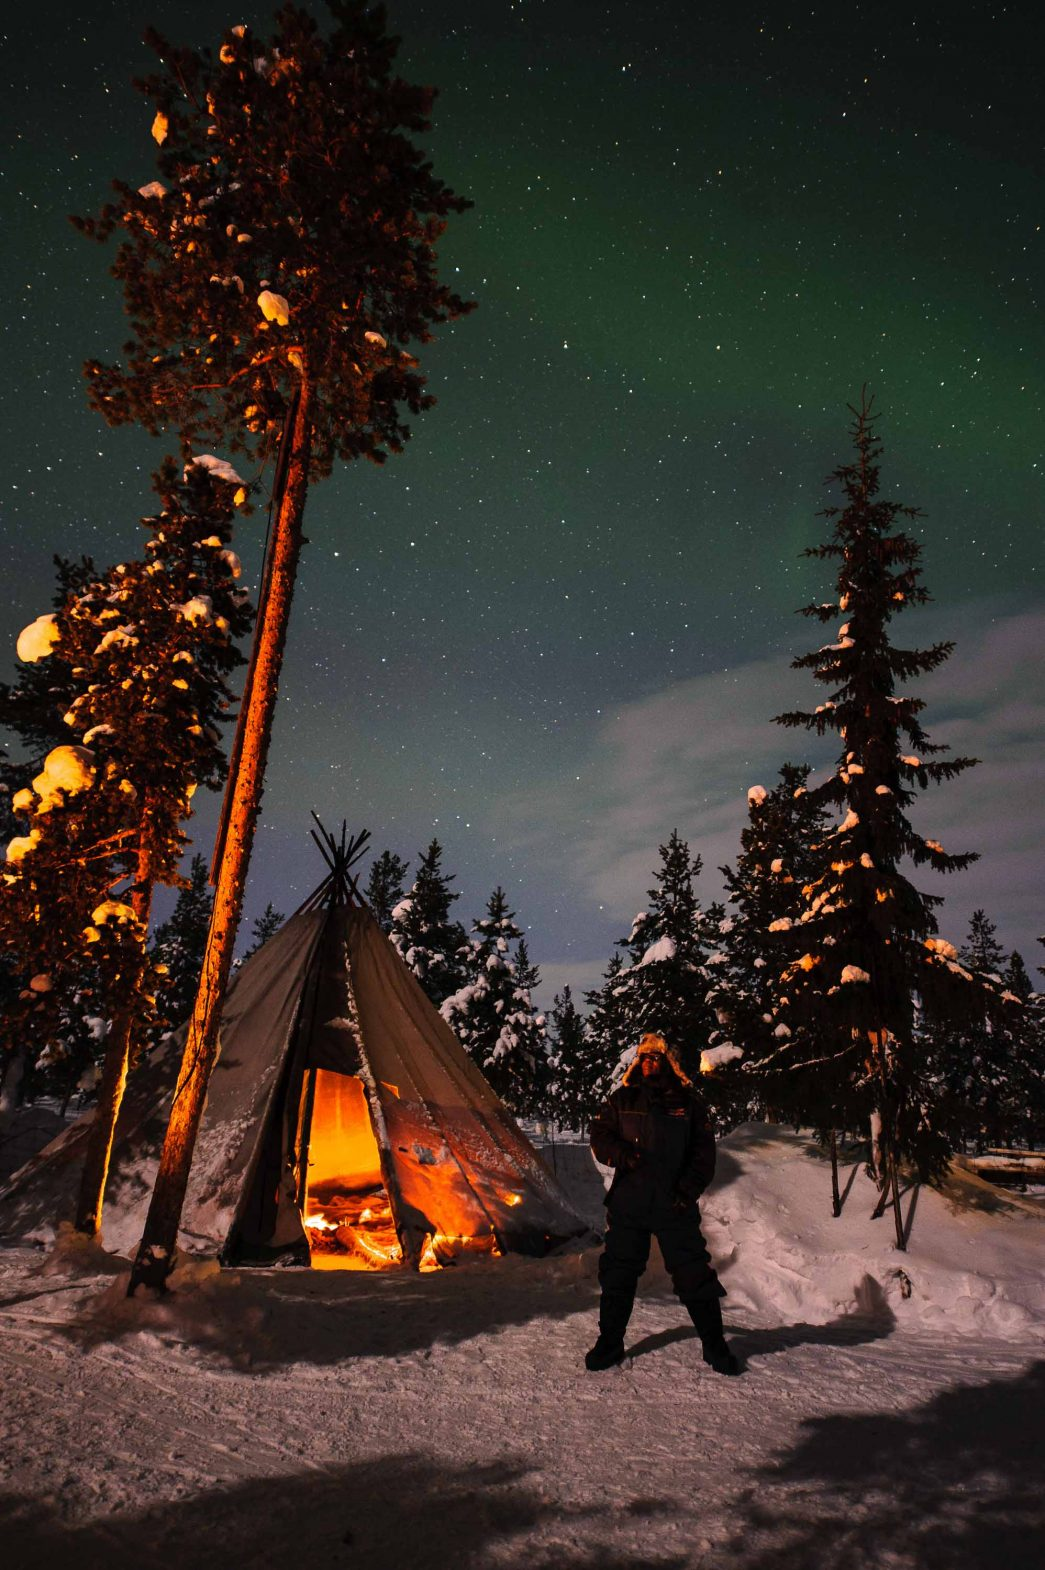 Lola looks up at the northern lights above tents at the reindeer lodge in Sweden.